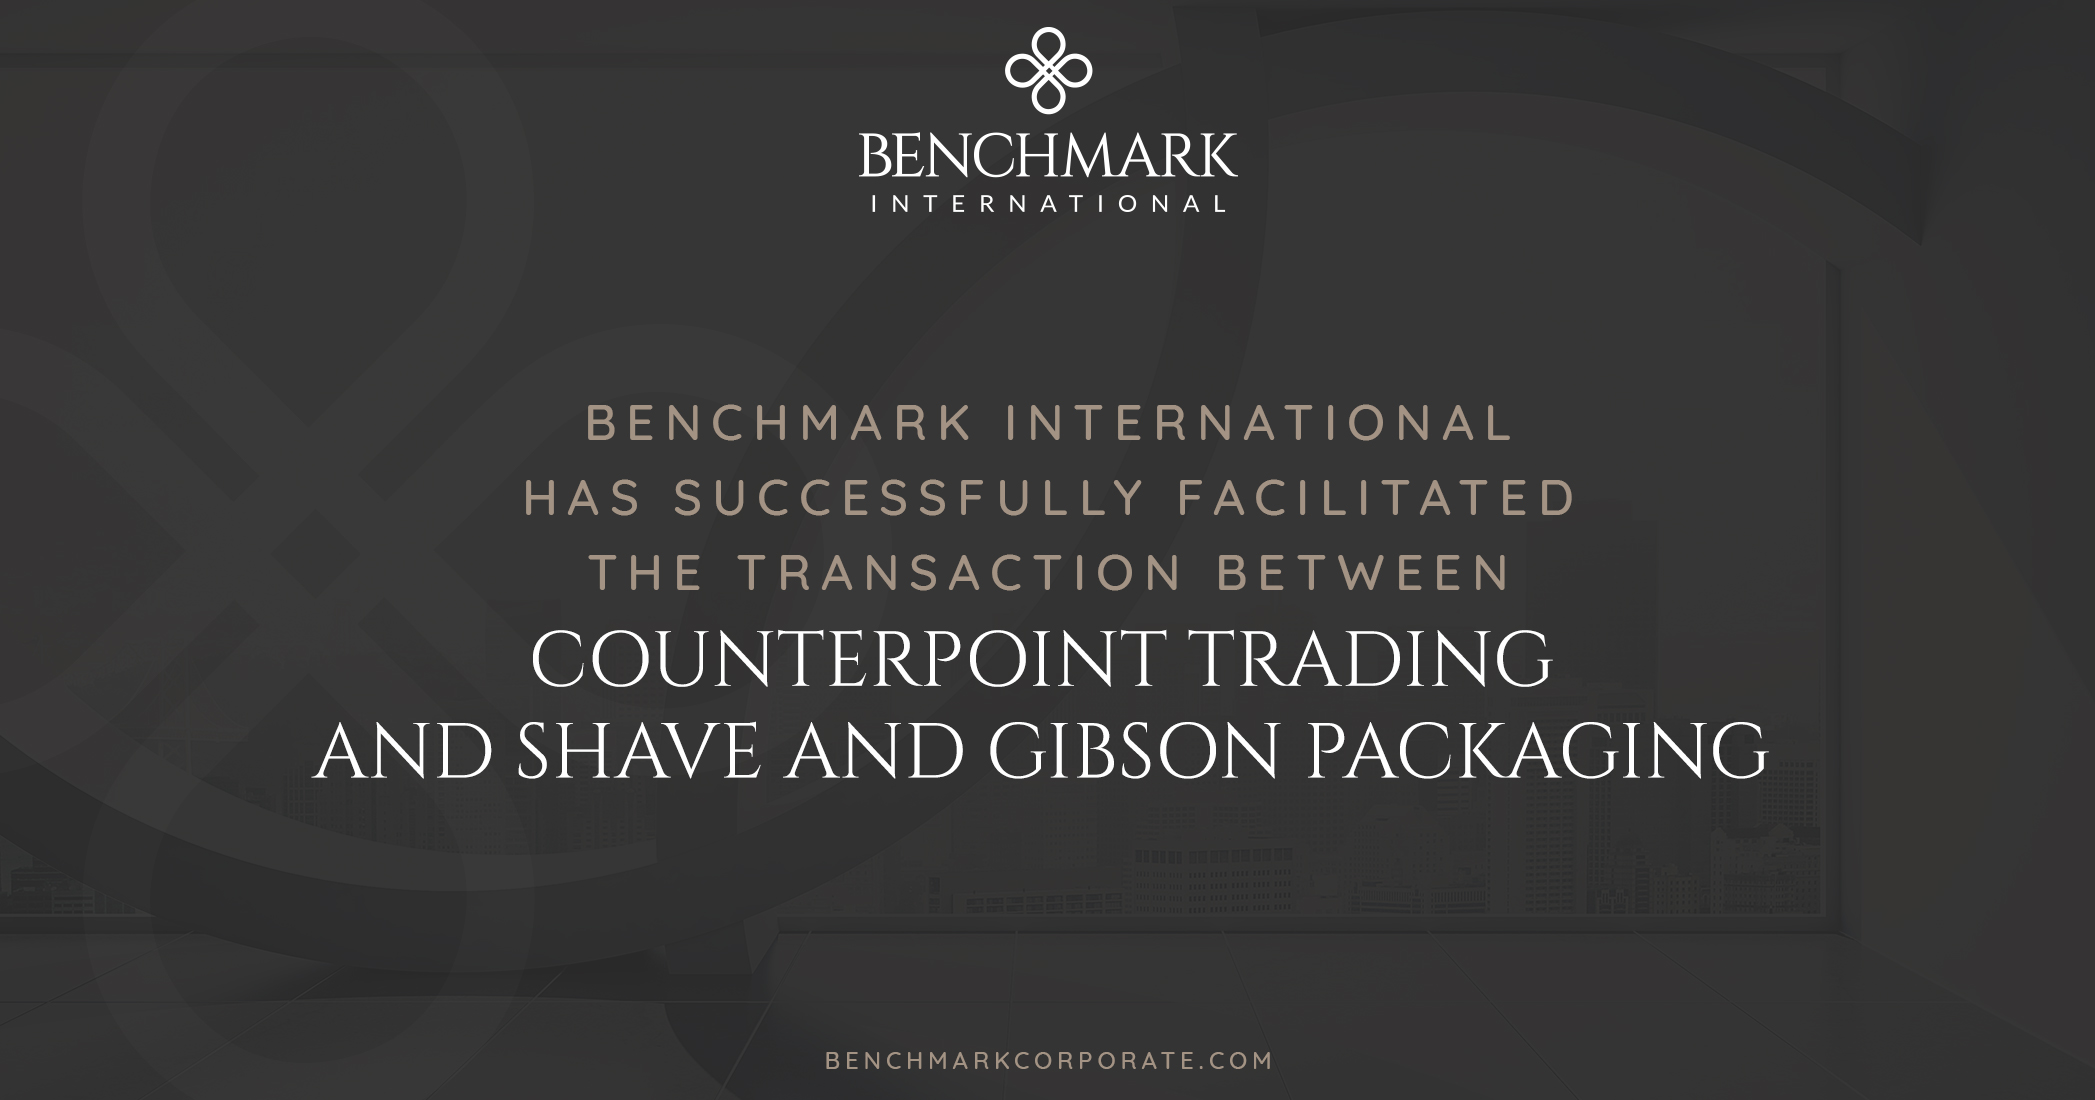 Benchmark International Has Successfully Facilitated The Transaction Between Counterpoint Trading And Shave And Gibson Packaging